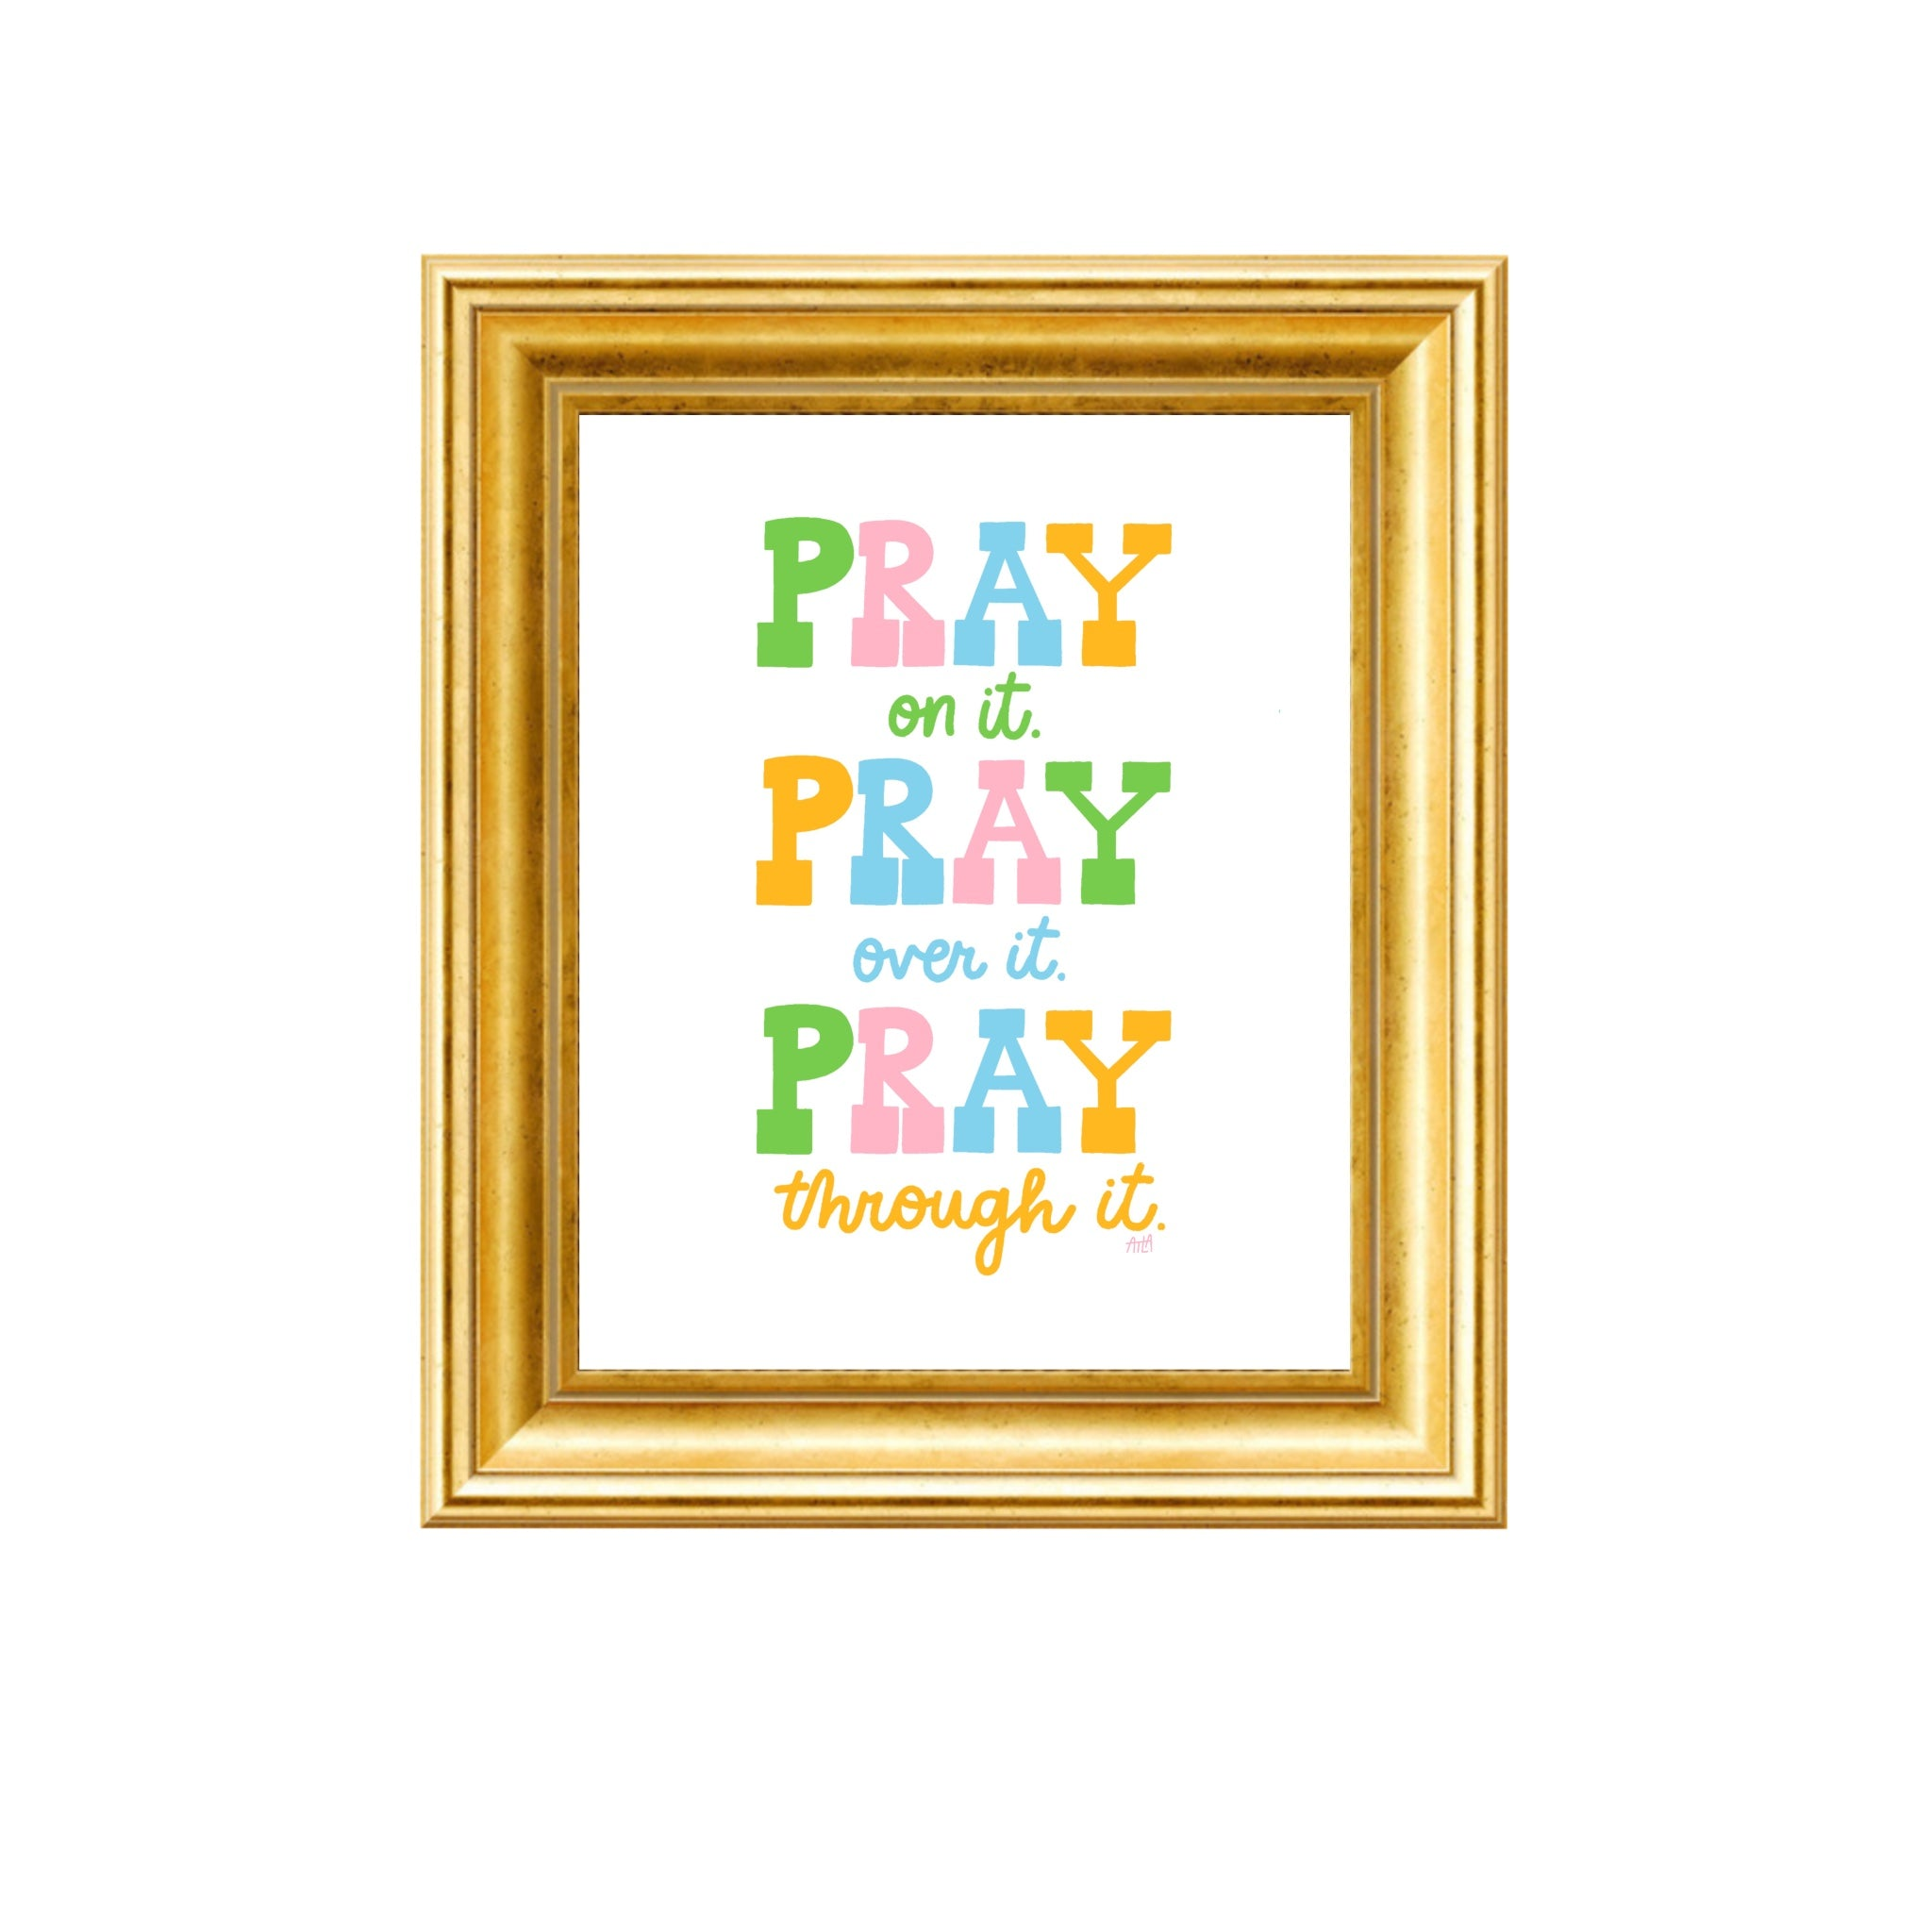 PRAY ON IT PRINT